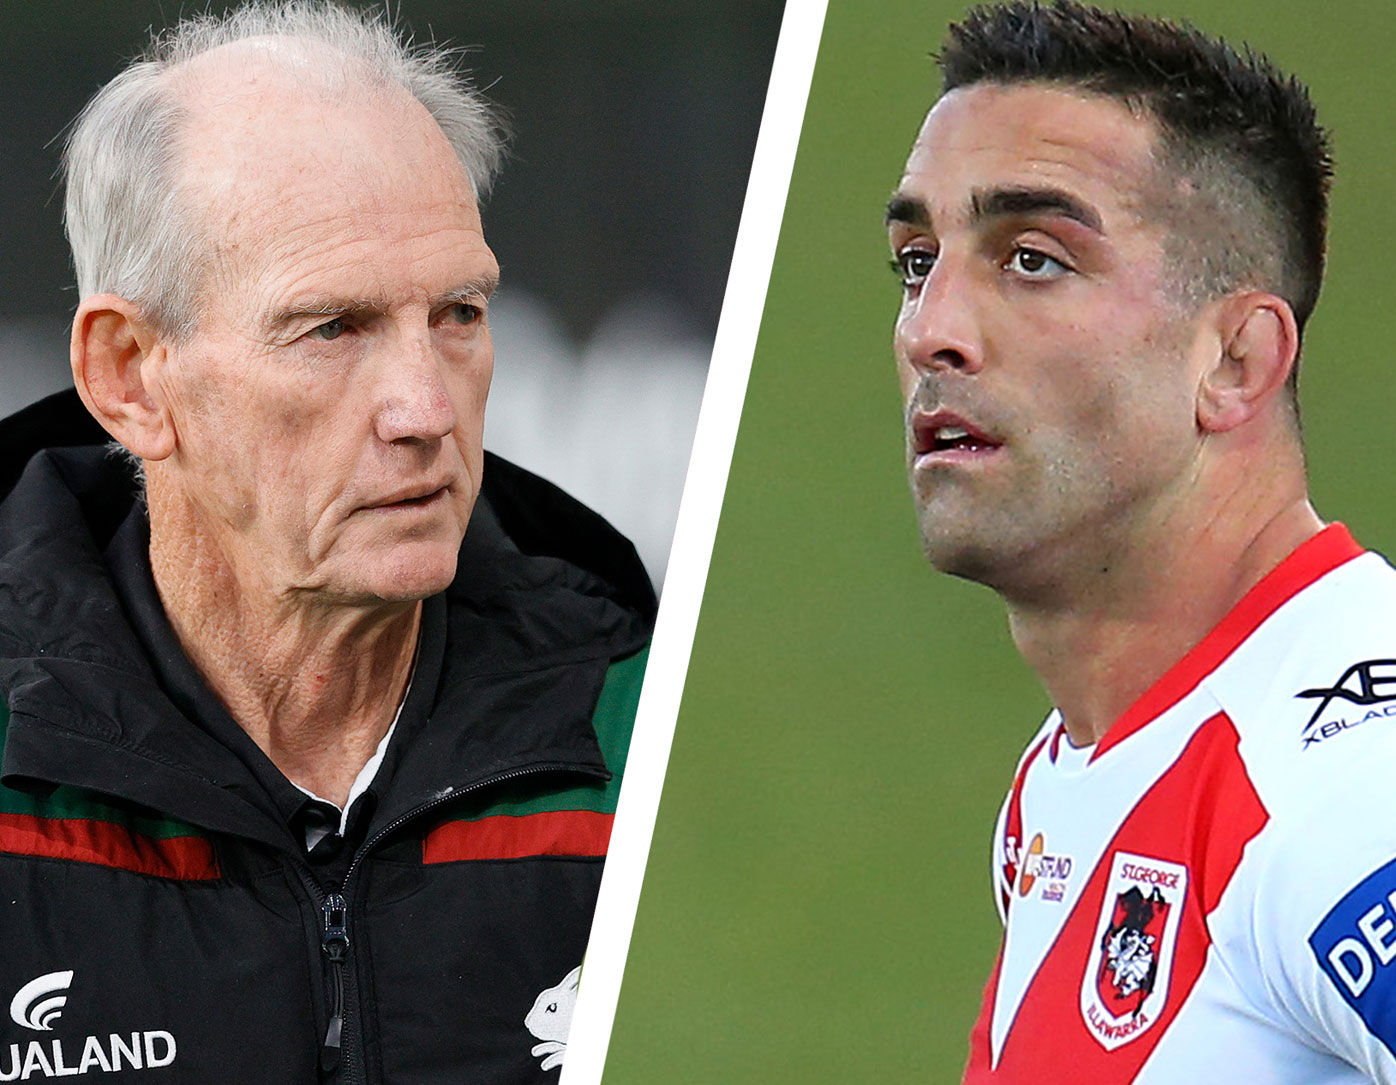 These offenders need to be kicked out of the NRL